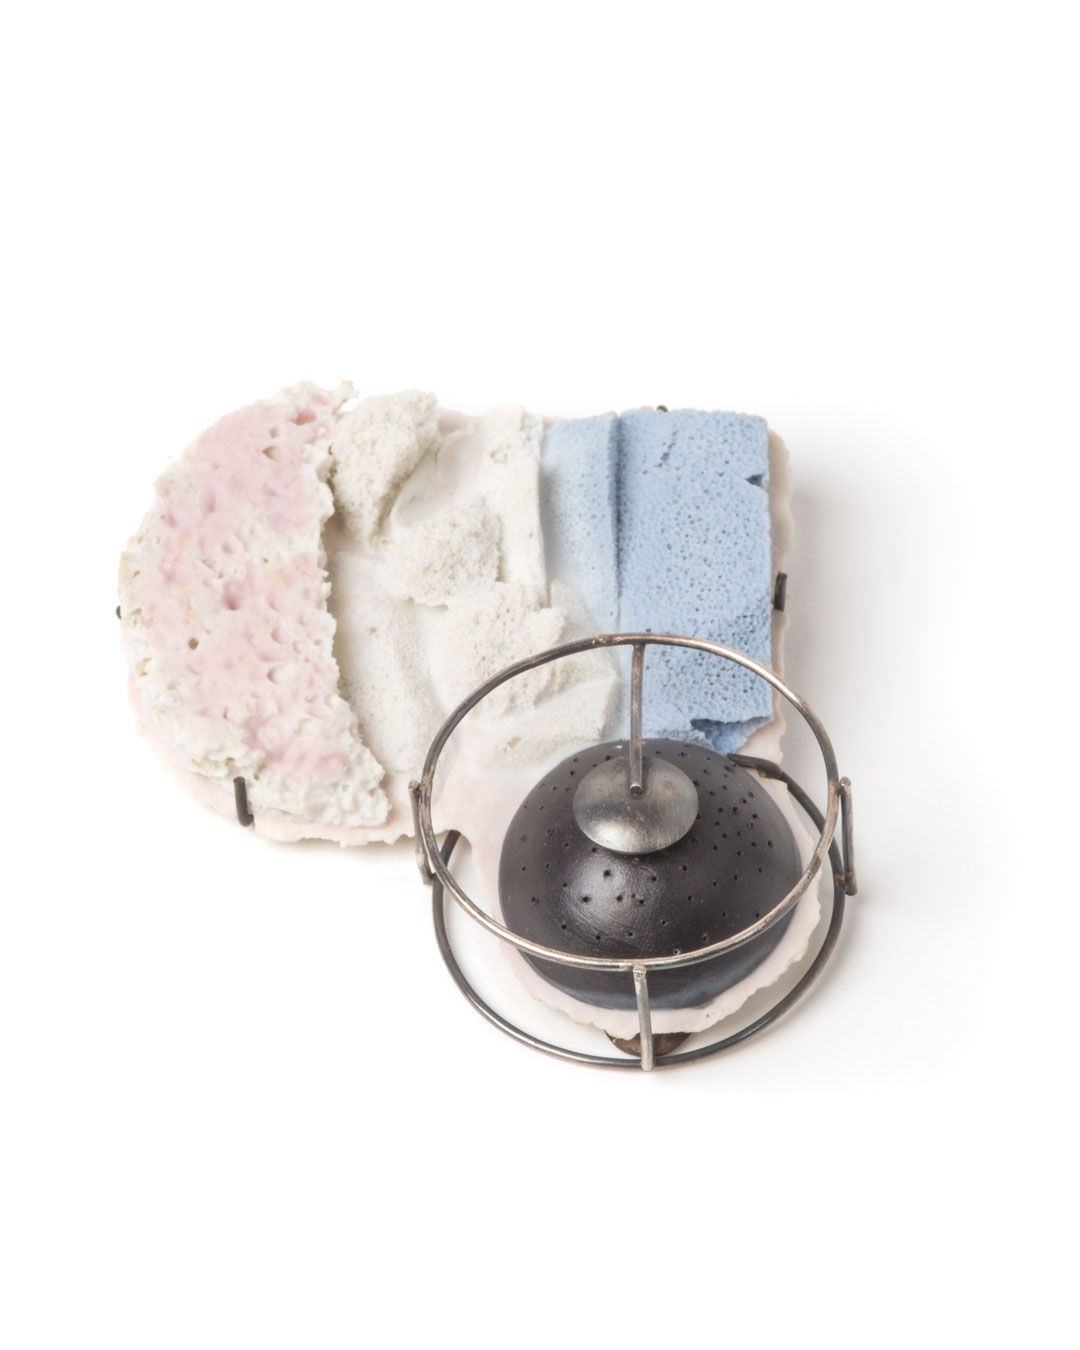 Trinidad Contreras, untitled, 2015, brooch; porcelain, oxidised silver, steel, 70 x 80 x 20 mm, €920